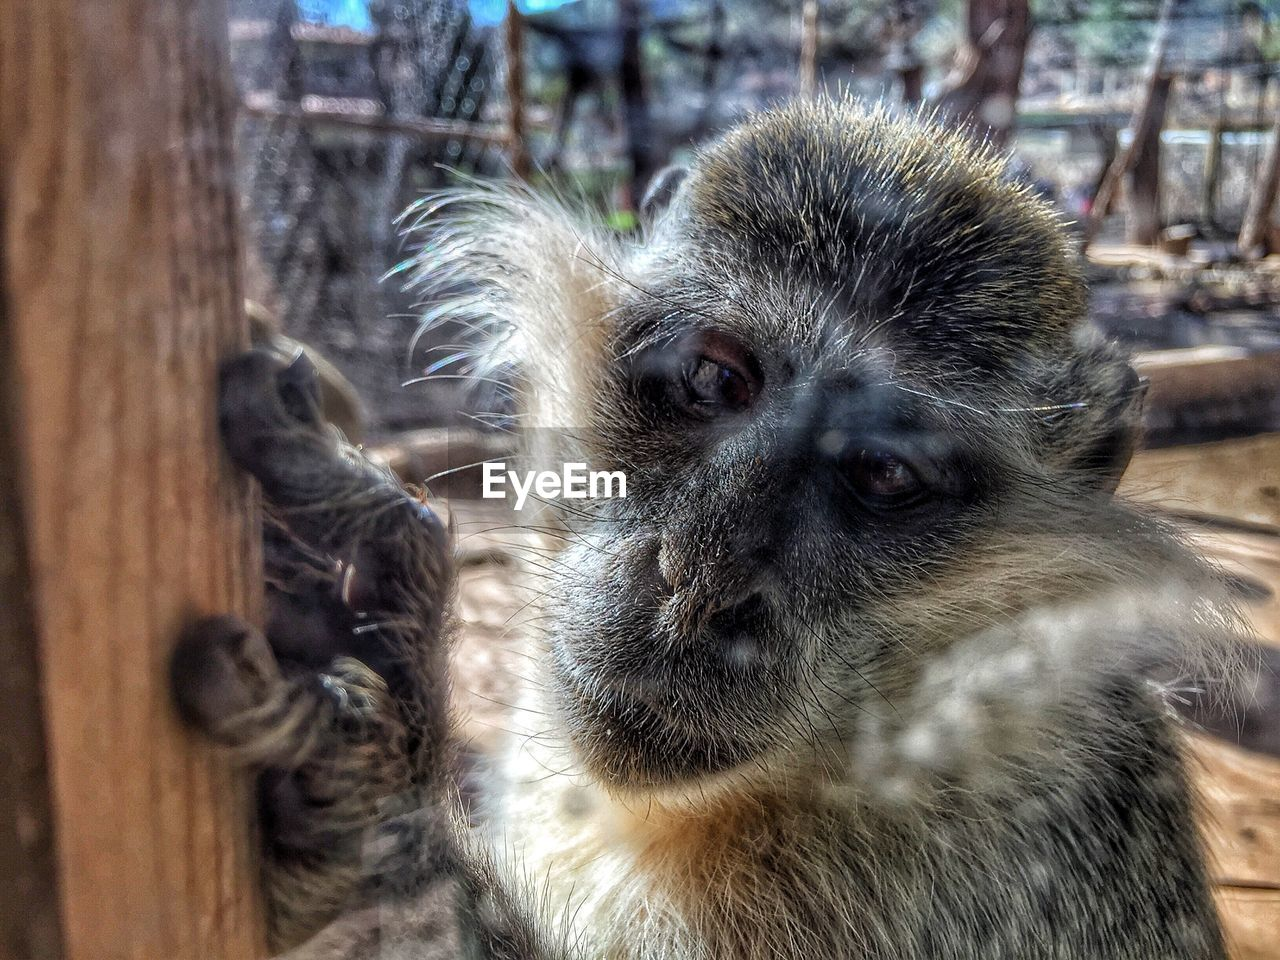 animal themes, animal, primate, monkey, mammal, animal wildlife, animals in the wild, one animal, close-up, day, no people, focus on foreground, vertebrate, zoo, looking, portrait, outdoors, looking away, animals in captivity, animal body part, animal head, baboon